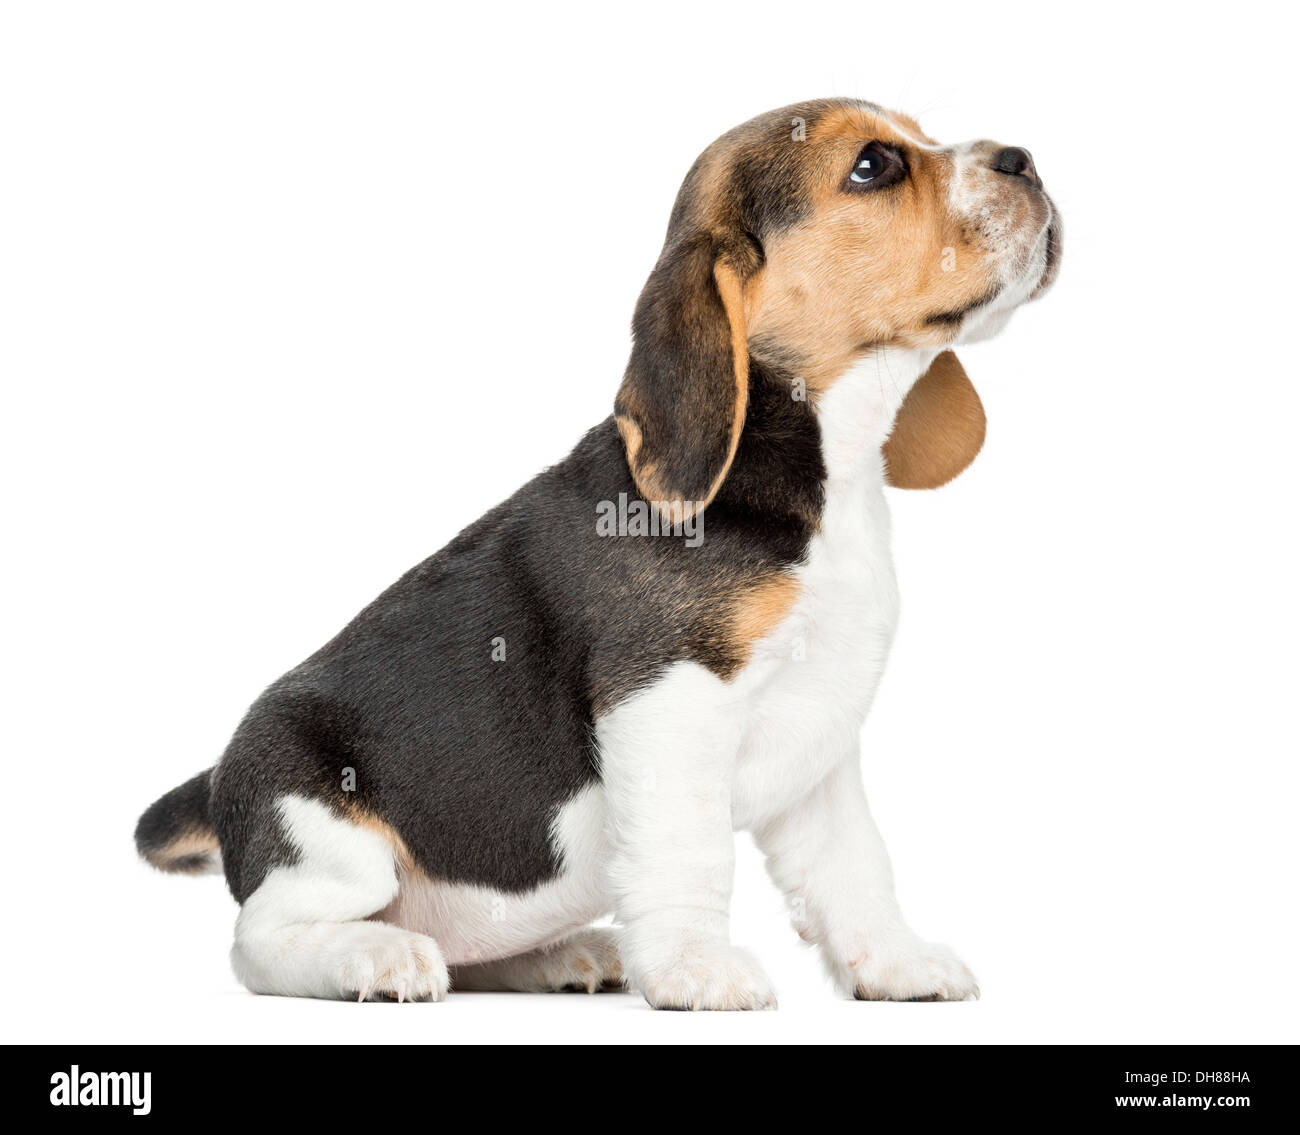 Side View Of A Beagle Puppy Sitting Looking Up Against White Stock Photo Alamy